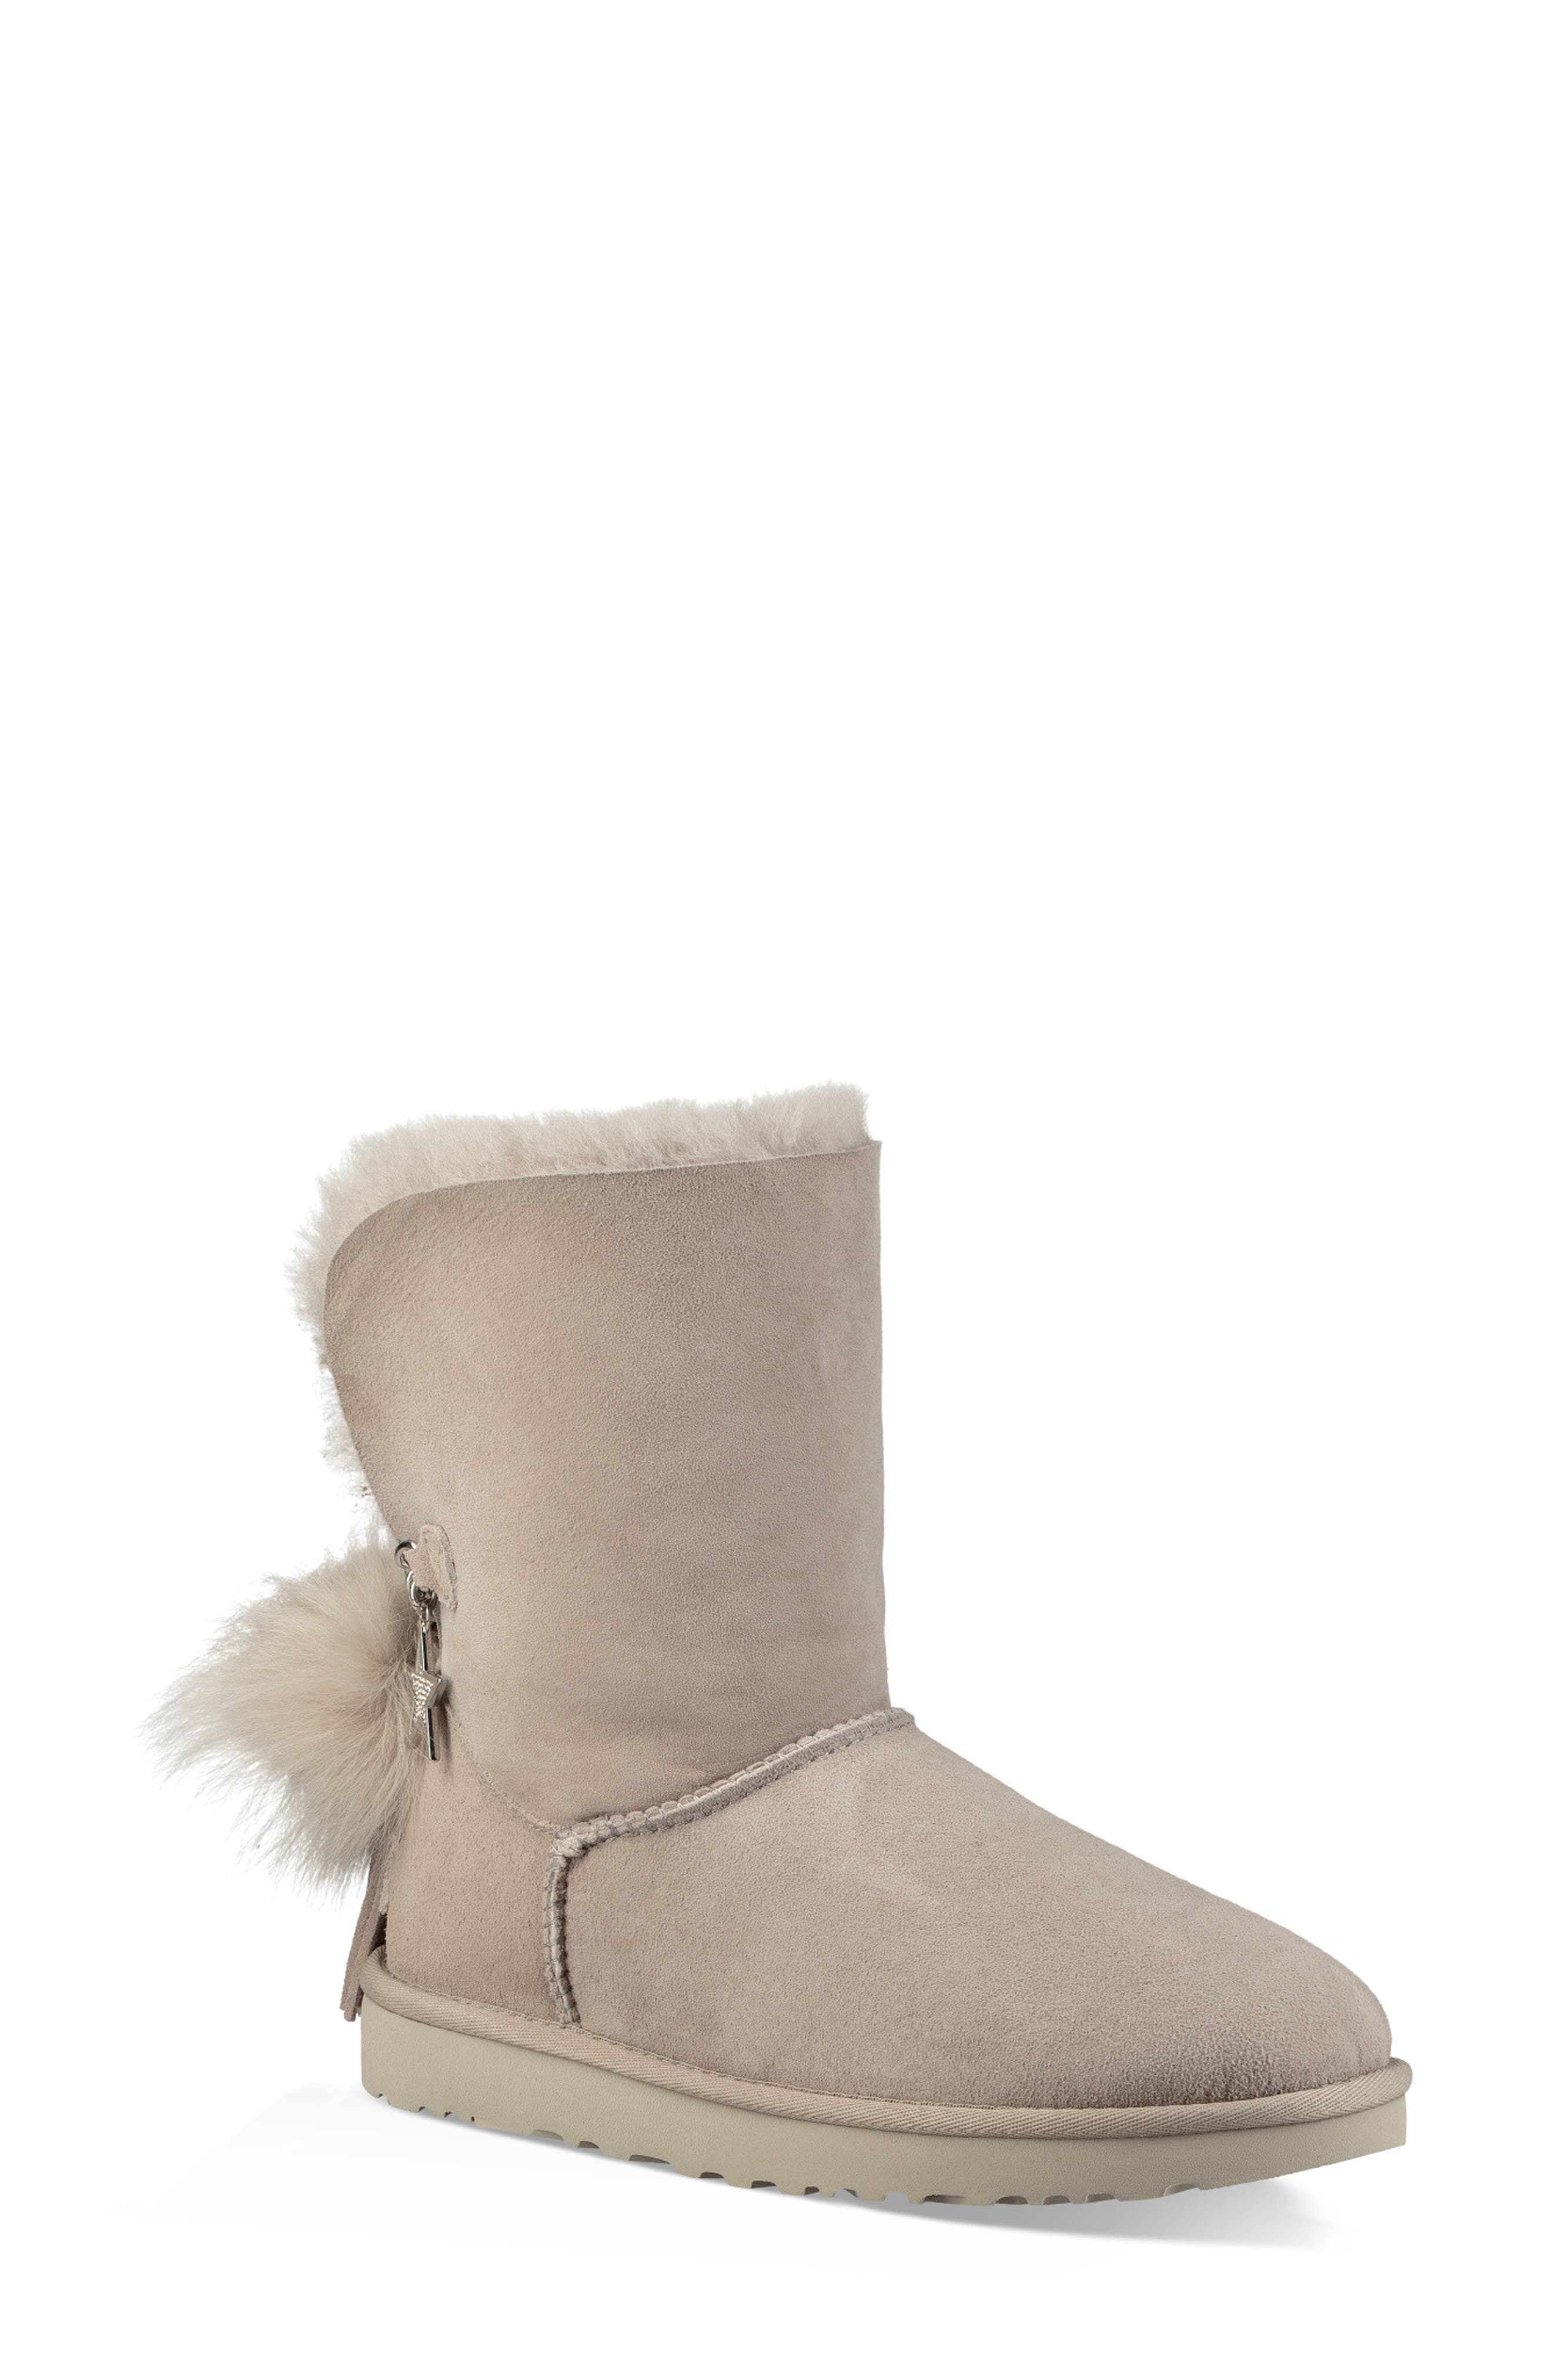 Classic Charm Bootie,                             Main thumbnail 1, color,                             WILLOW SUEDE